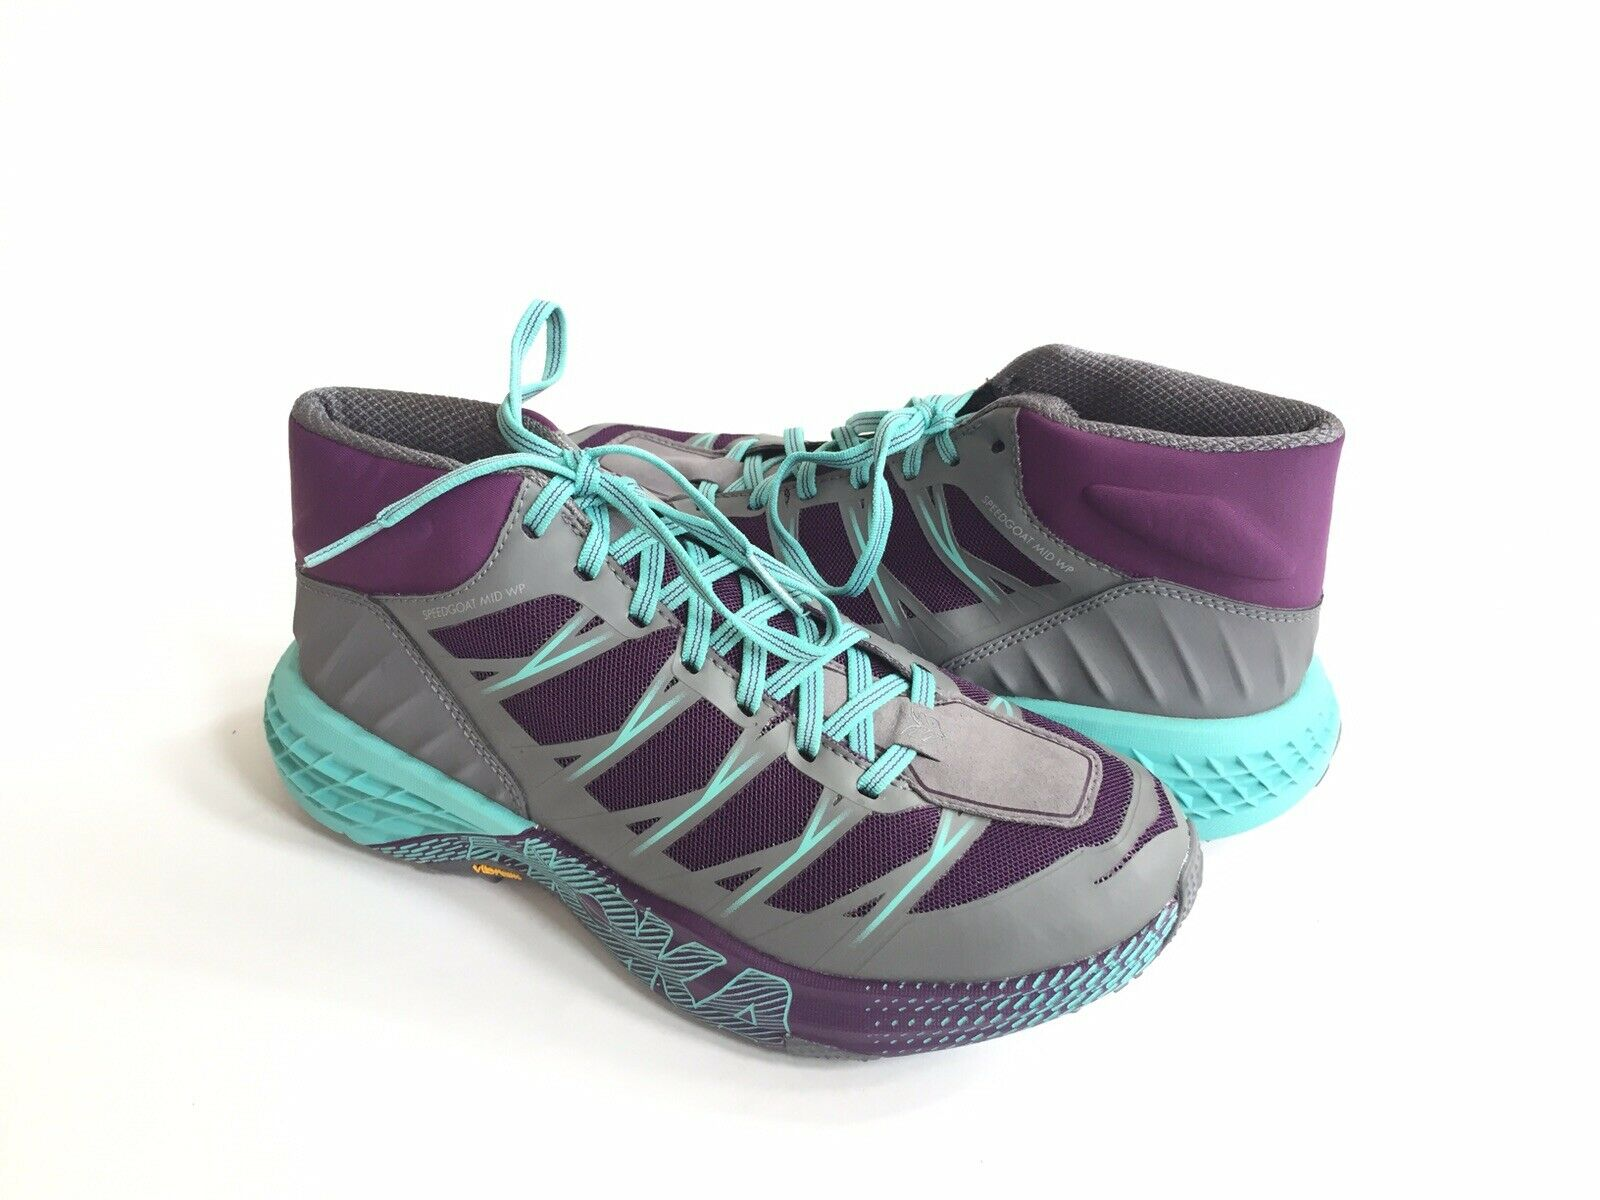 HOKA ETT KVINNOR SPEEDGOAT MID WP WP WP GRAPE ROYALE  ALLOY US 7   EU 38 2  3   UK 5.5  låga priser